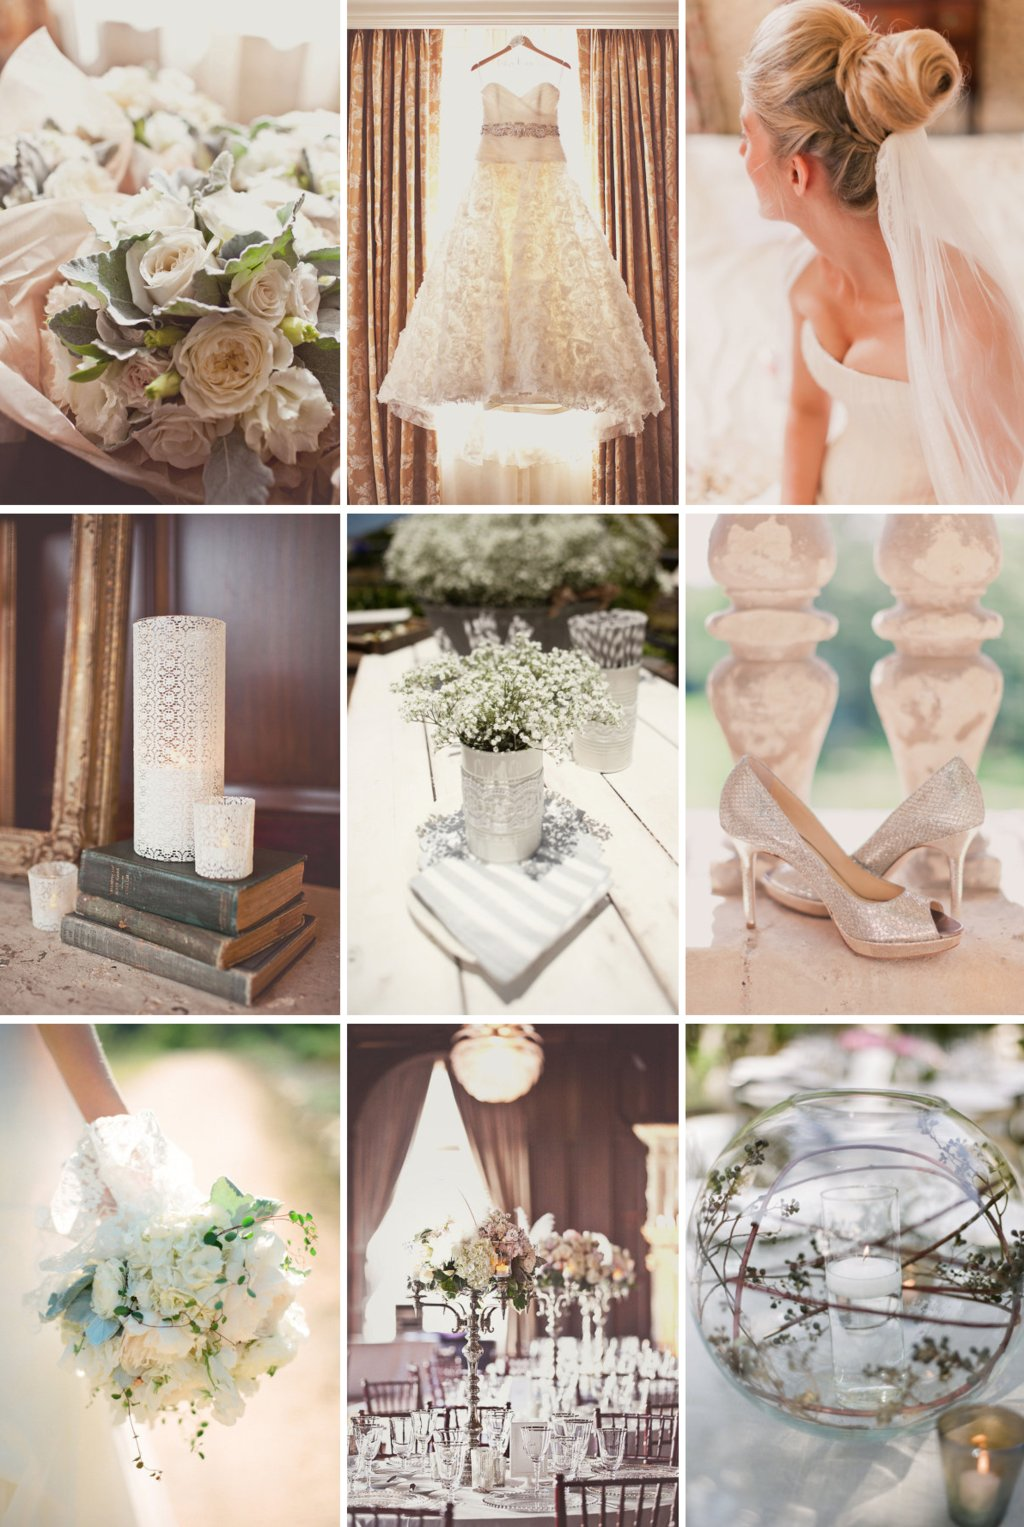 Elegant-wedding-colors-soft-neutrals.full